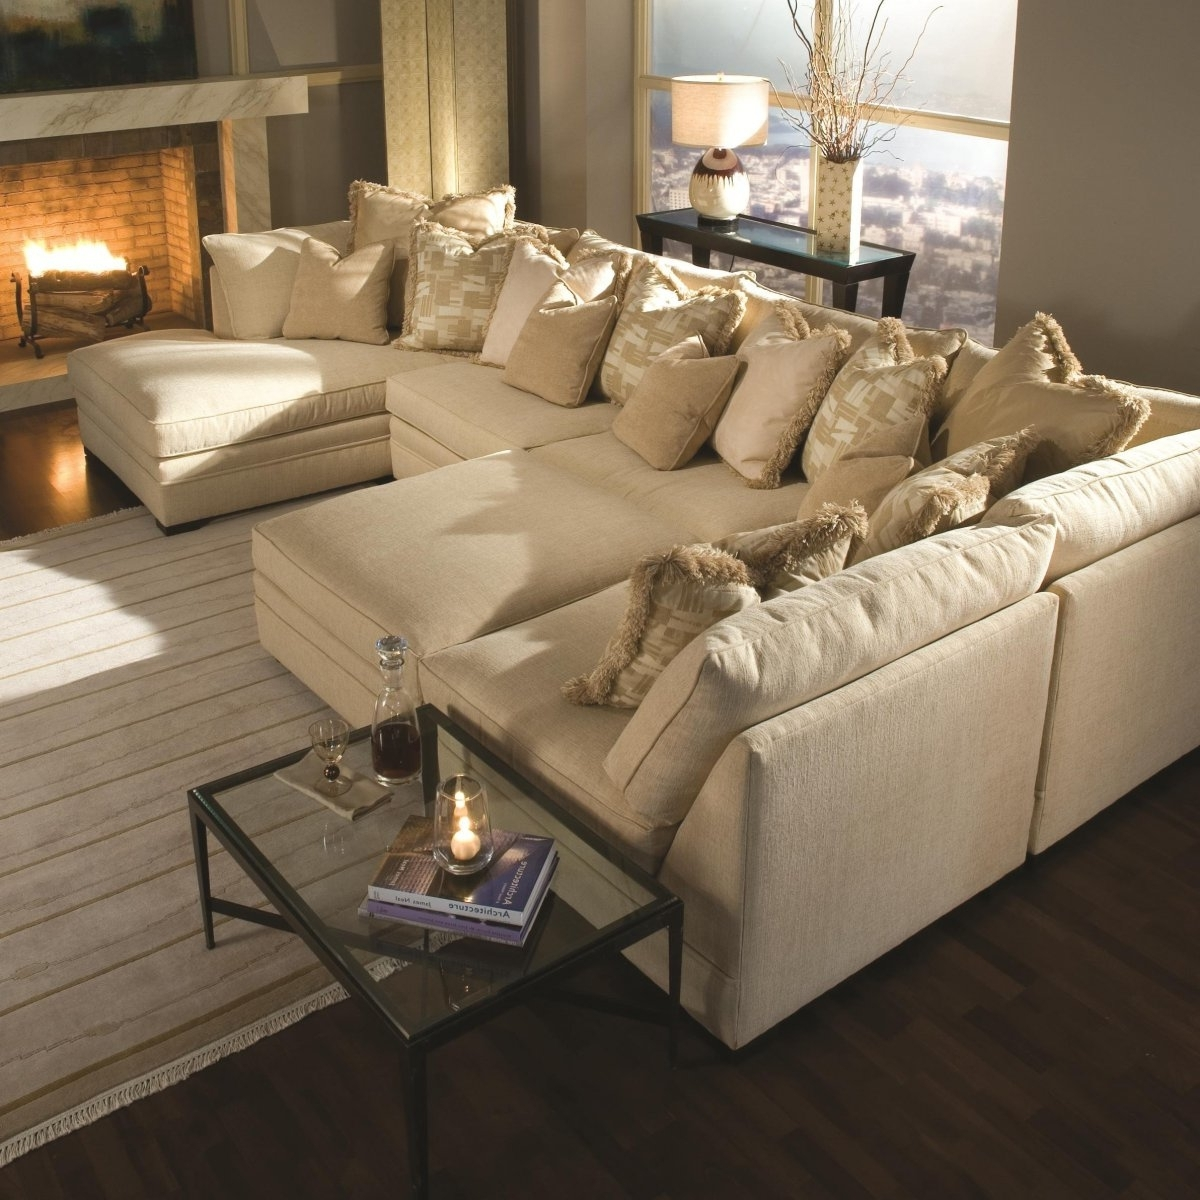 Widely Used Light Brown Sectional Fabric Sofa With Two Chaise Lounge And Piles With Regard To Chaise Lounge Sectionals (View 11 of 15)